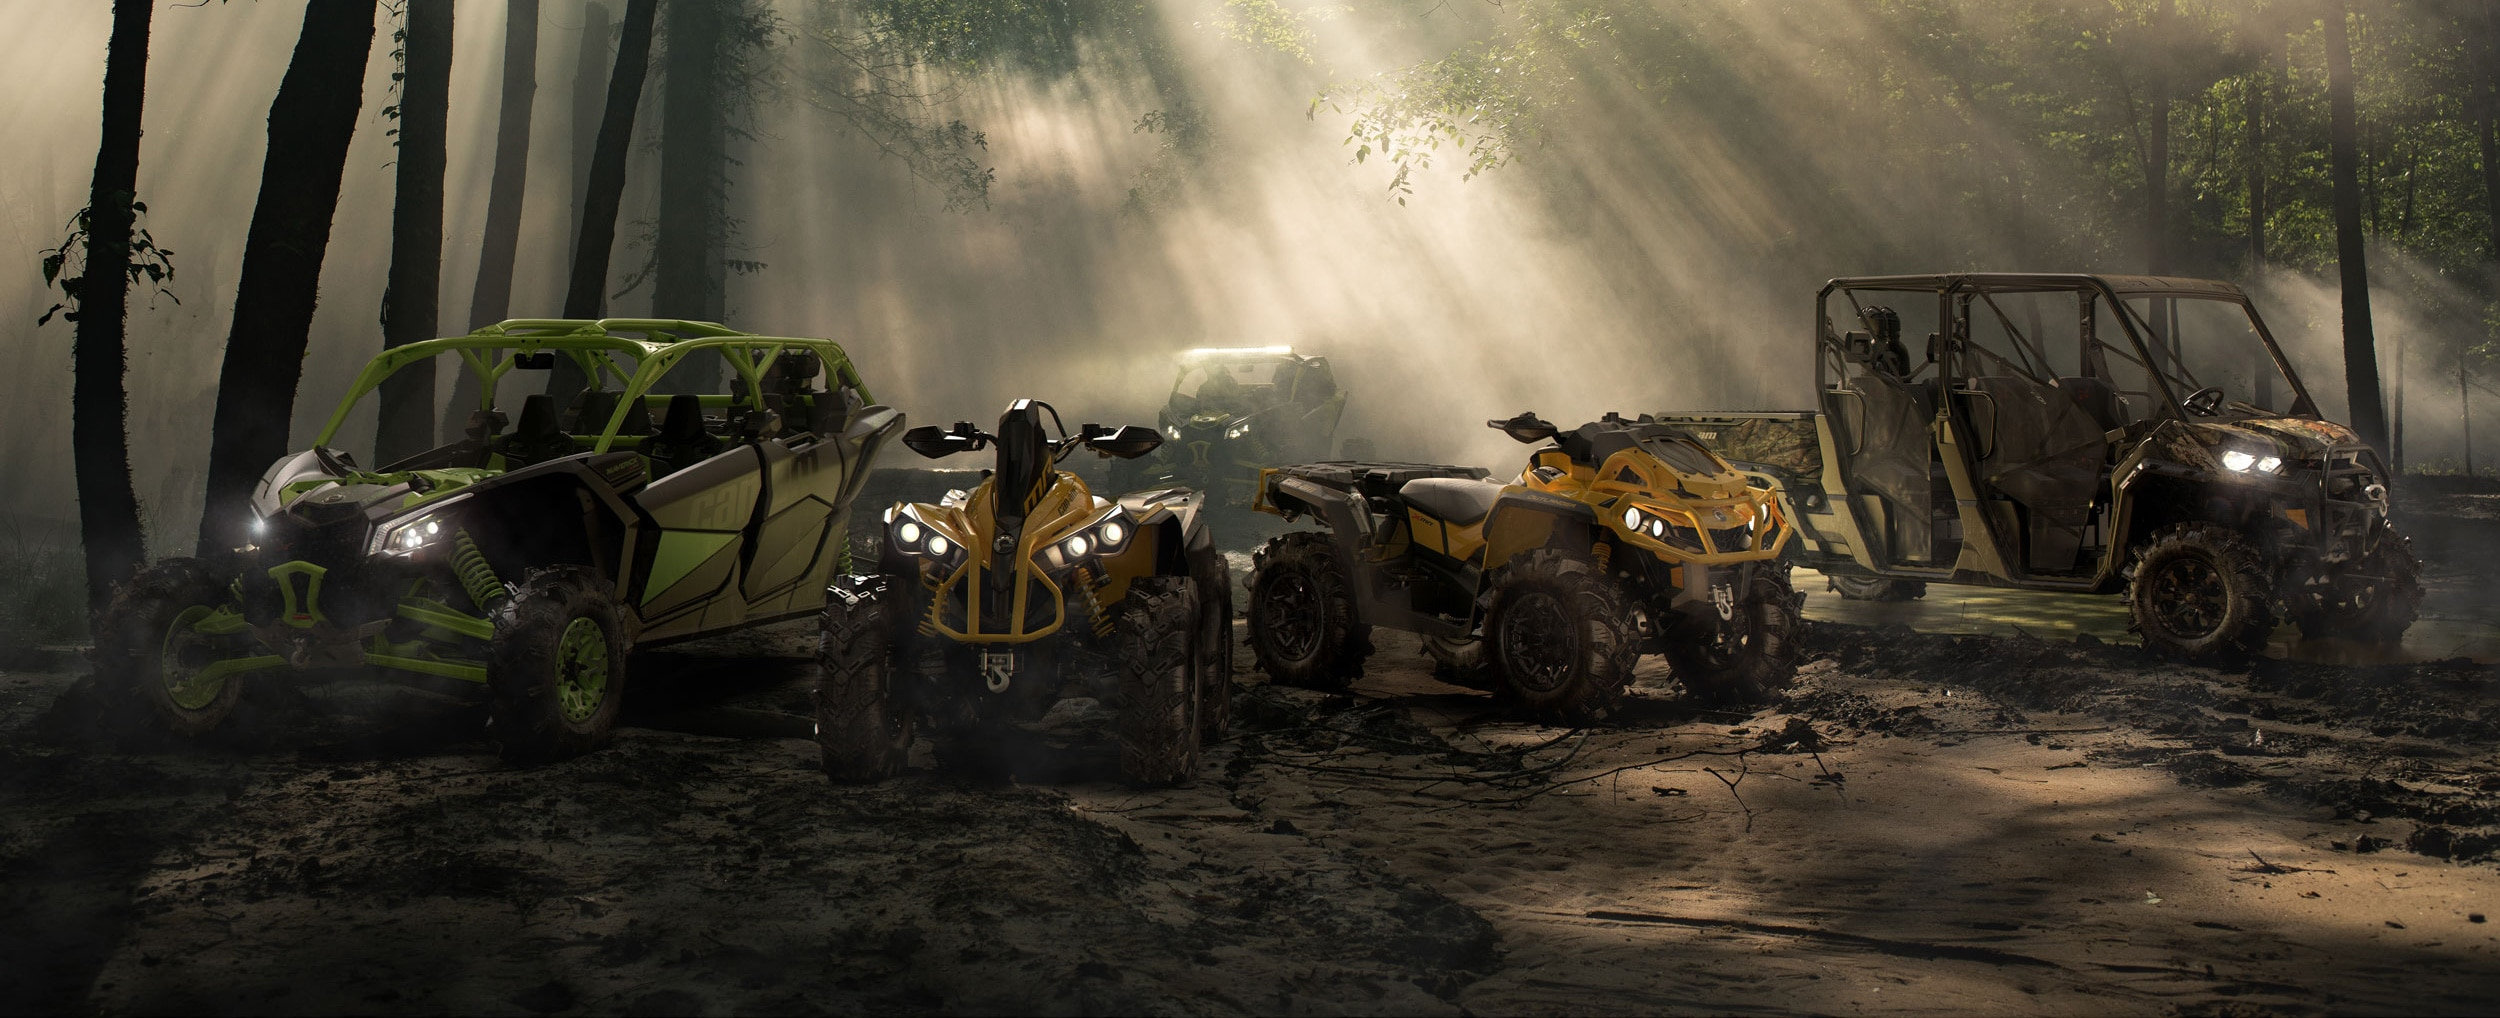 Two Can-Am ATVs and three Can-Am side-by-sides parked in a forest